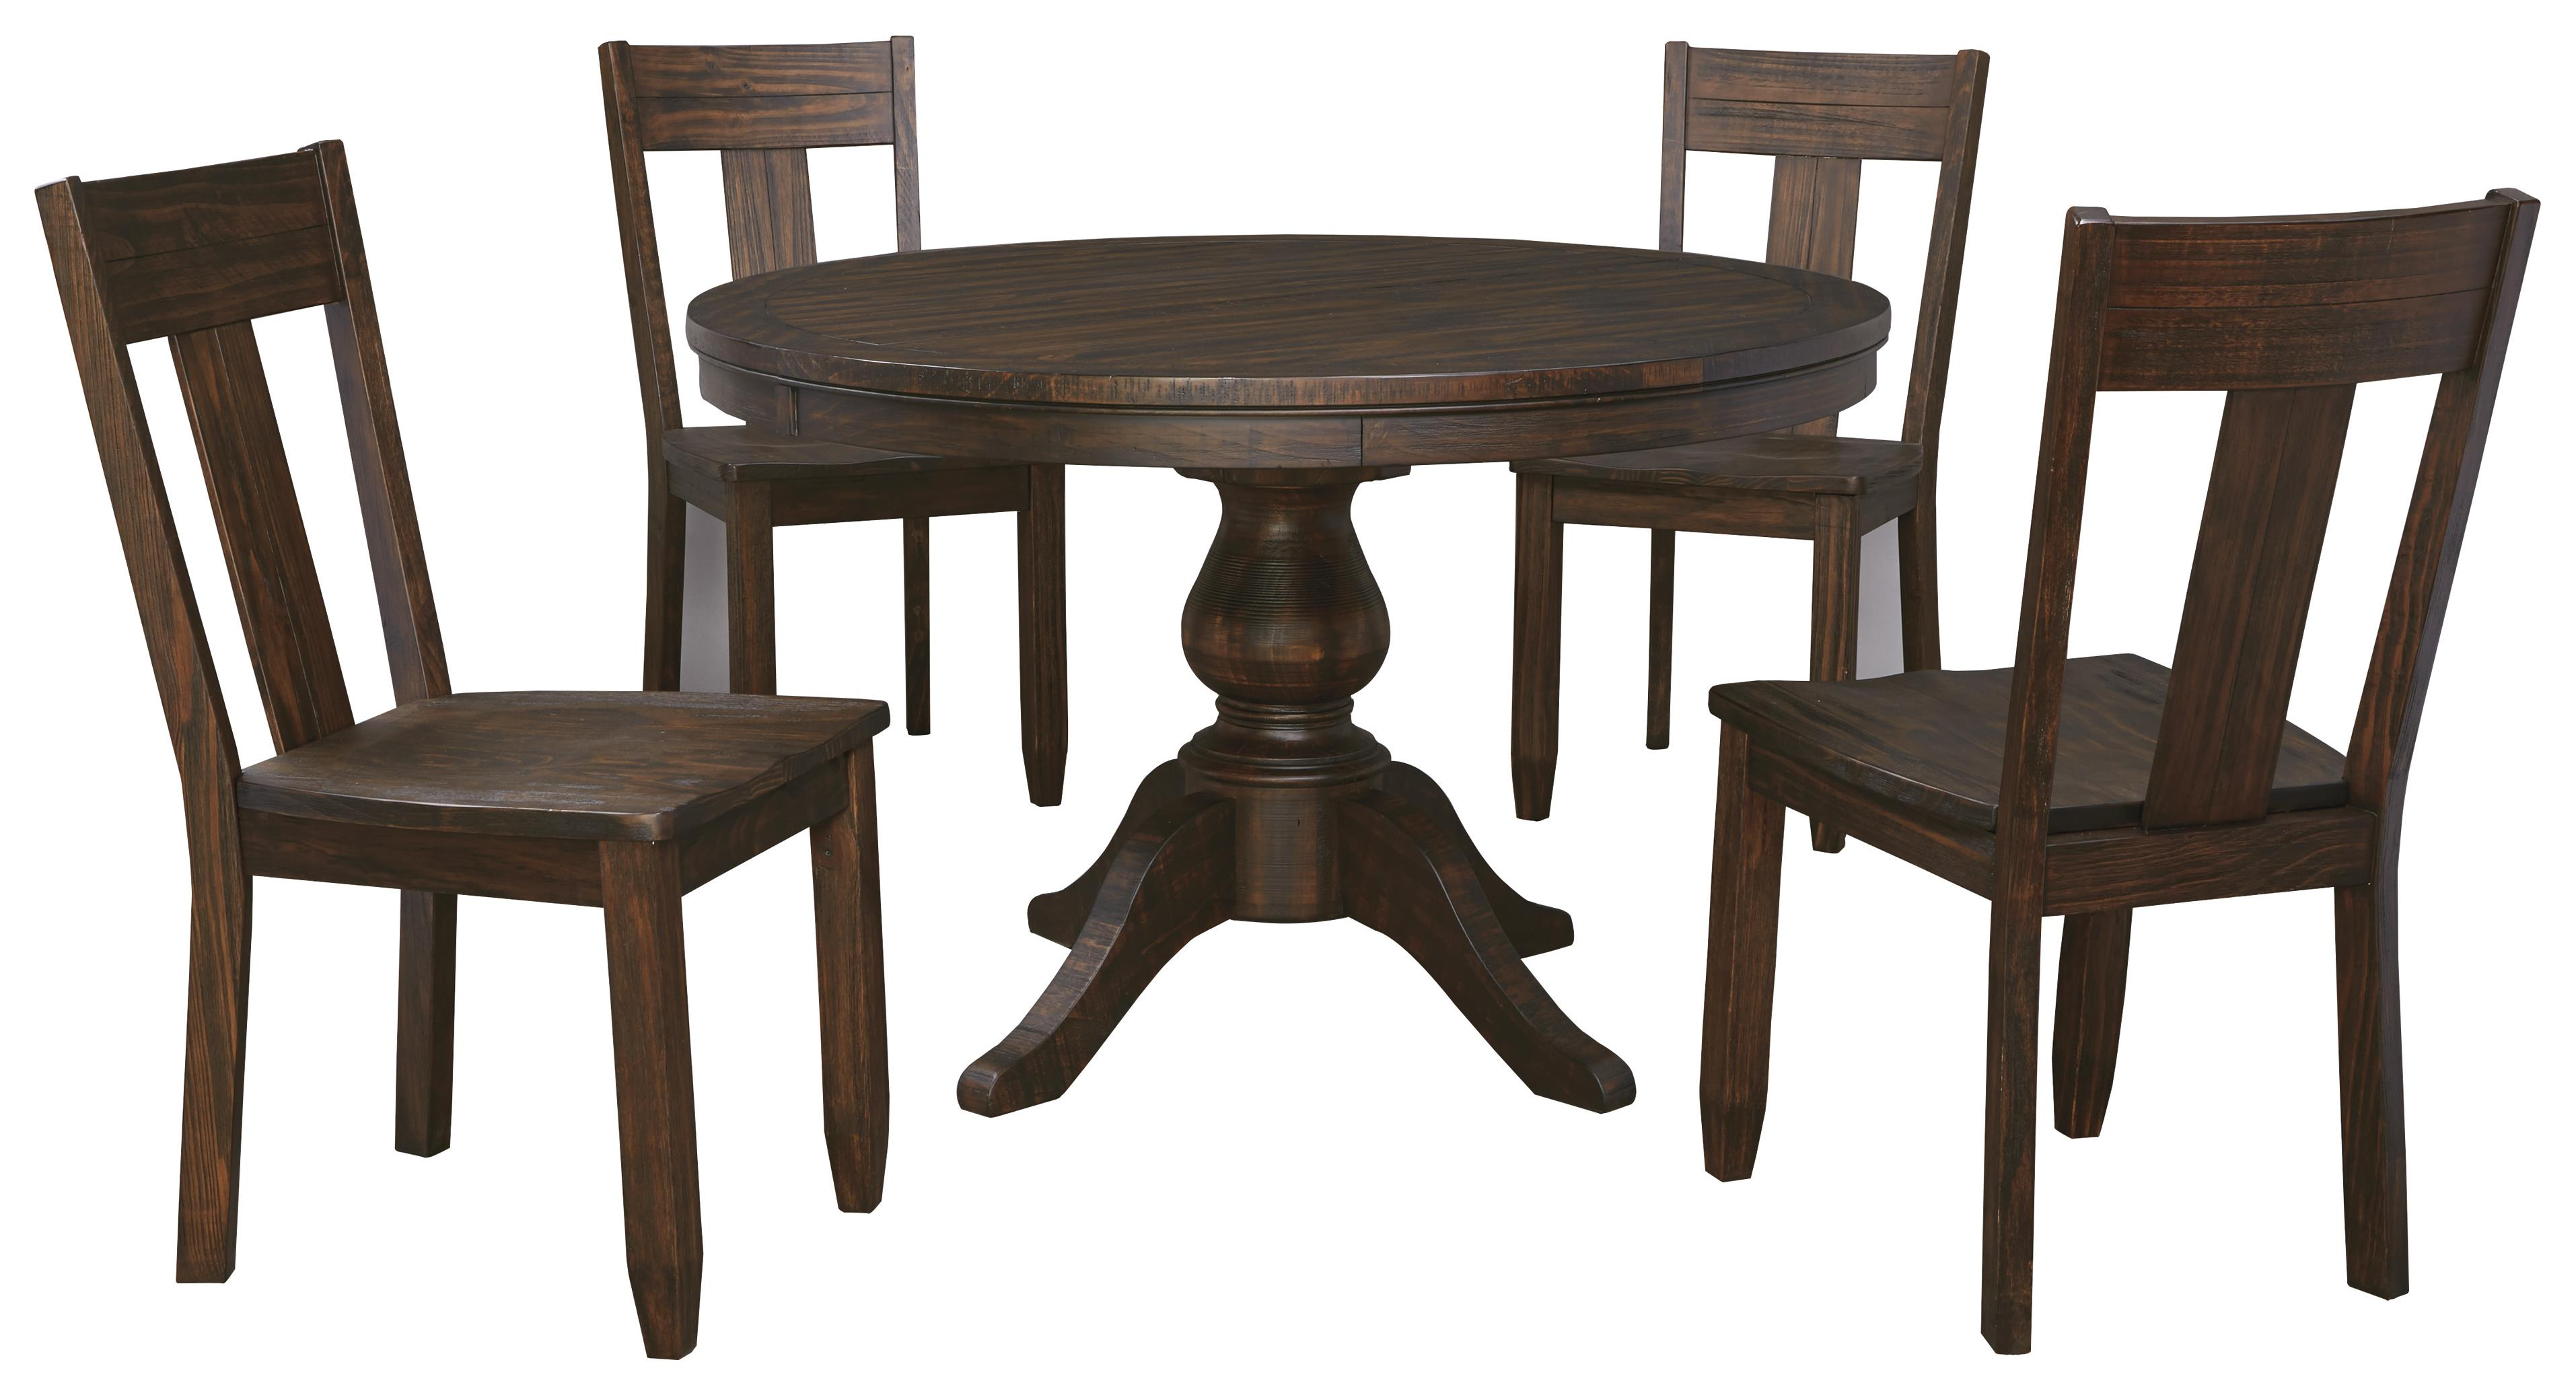 Signature Design by Ashley Trudell 5-Piece Round Dining Table Set - Item Number  sc 1 st  Wayside Furniture & Signature Design by Ashley Trudell 5-Piece Round Dining Table Set ...